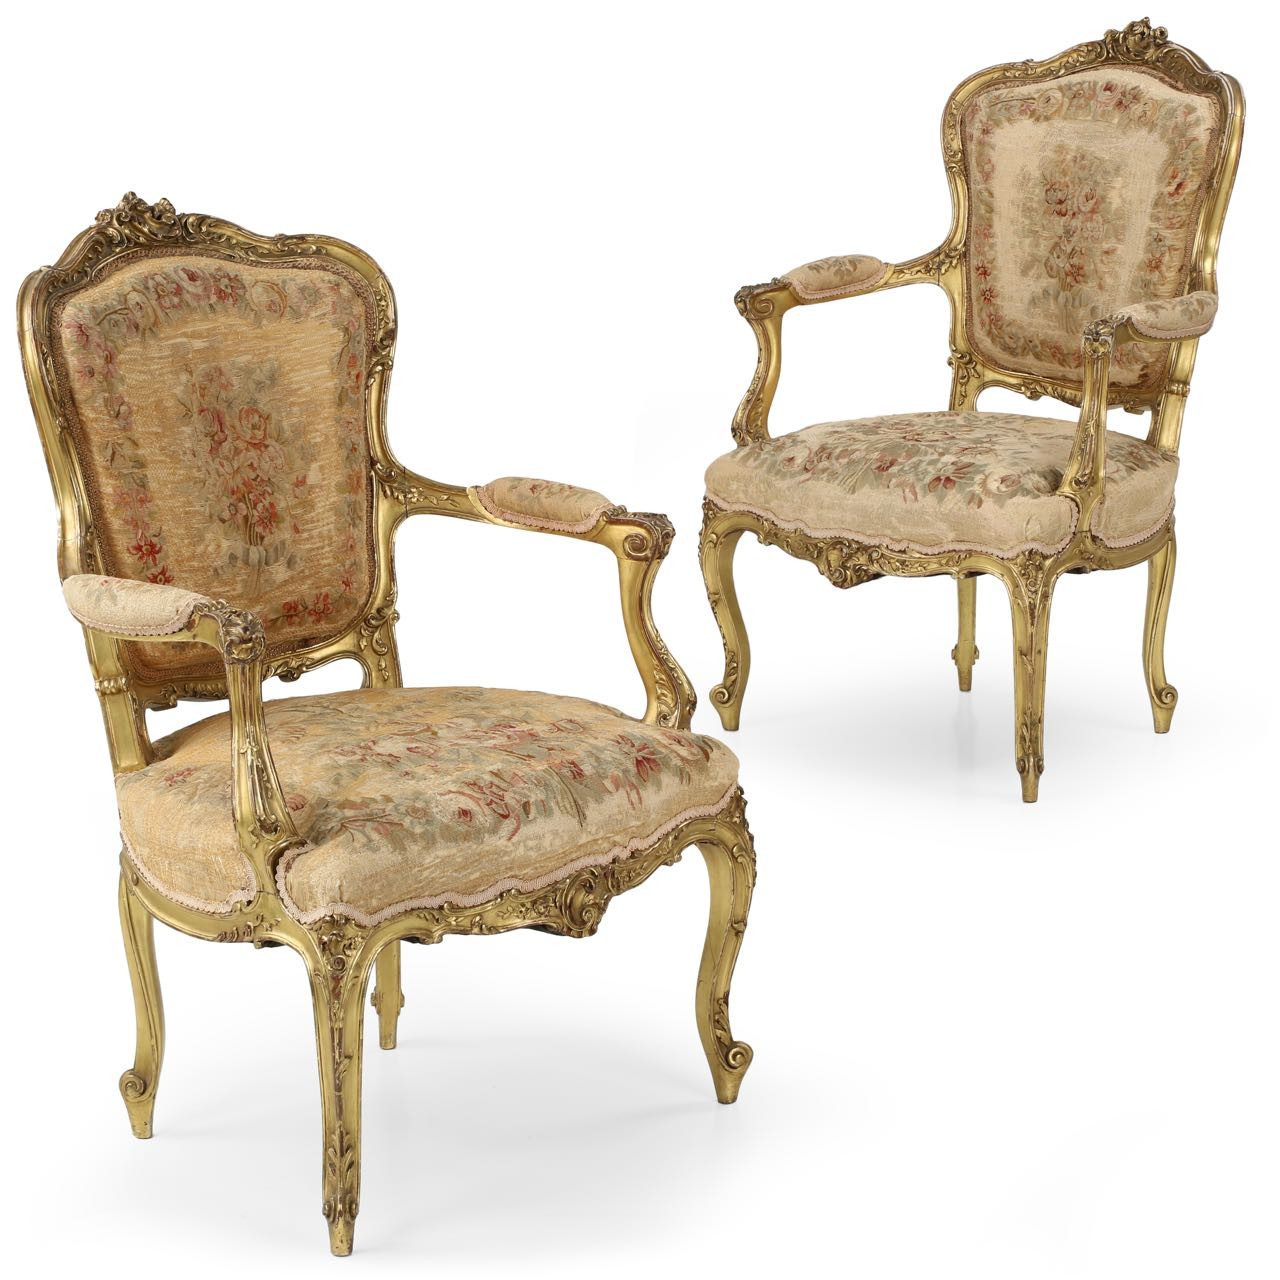 Exceptional Pair Of Gilt French Louis Xv Fauteuil Arm Chairs C 1870